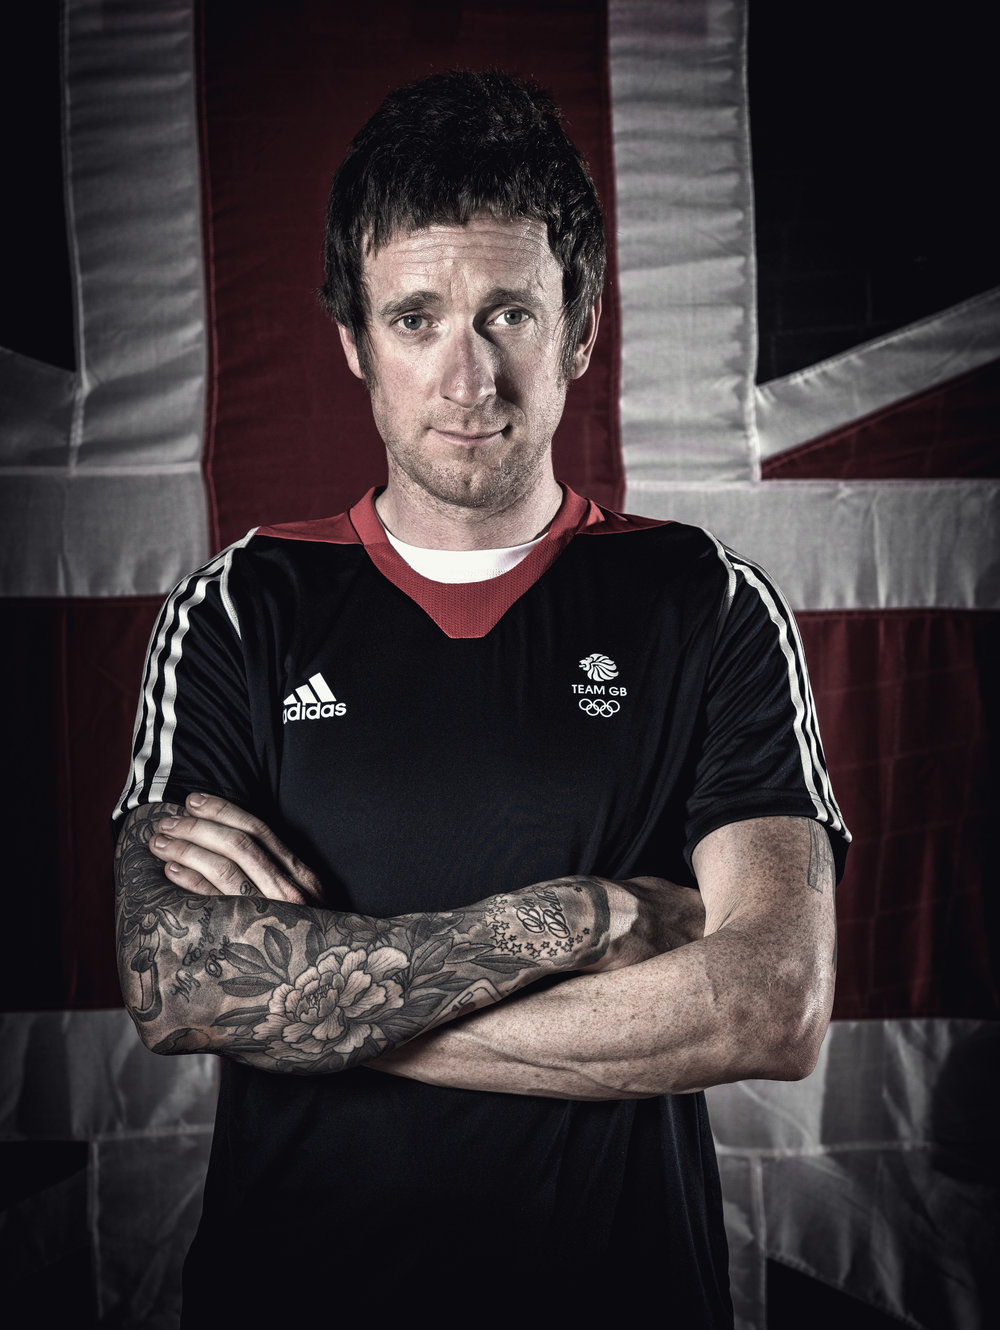 Sir Bradley Wiggins of Team GB  the Team GB track cyclists selected to ride in the Rio 2016 Olympic Games on June 24, 2016 in Manchester, England. PHOTO CREDIT PAUL COOPER